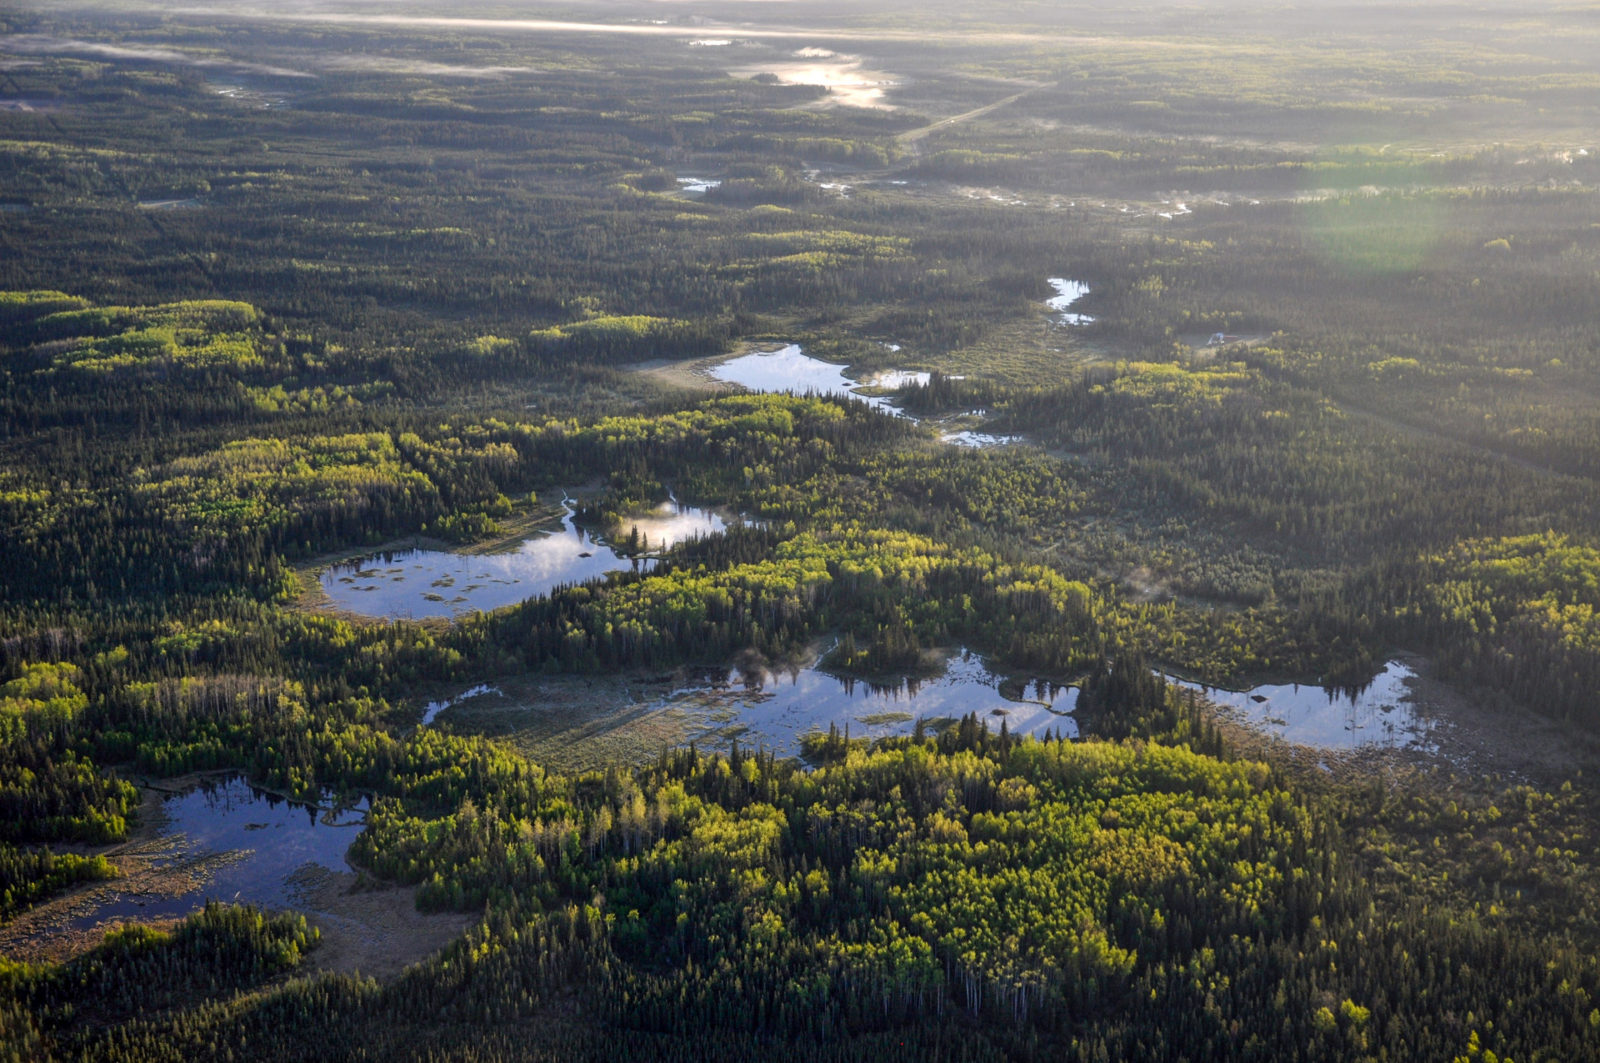 More than 208 billion tons of carbon are stored in the boreal's trees, soils. Ducks Unlimited Canada National Boreal Program Ecosystem Services Ducks Unlimited Canada National Boreal Program